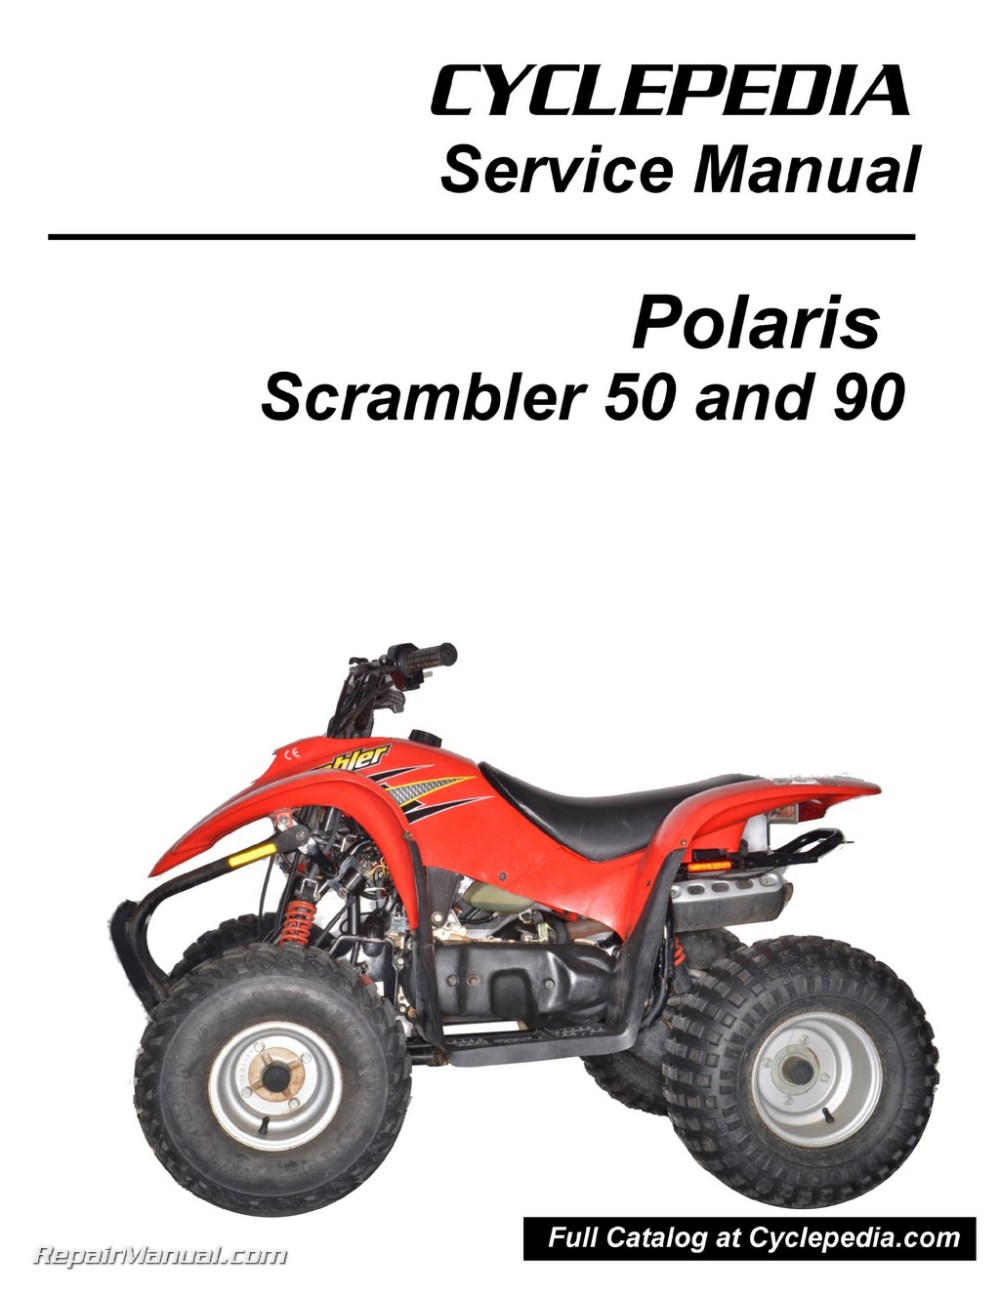 medium resolution of polaris 50cc 90cc scrambler atv print service manual by cyclepediapolaris 50cc 90cc scrambler atv print service